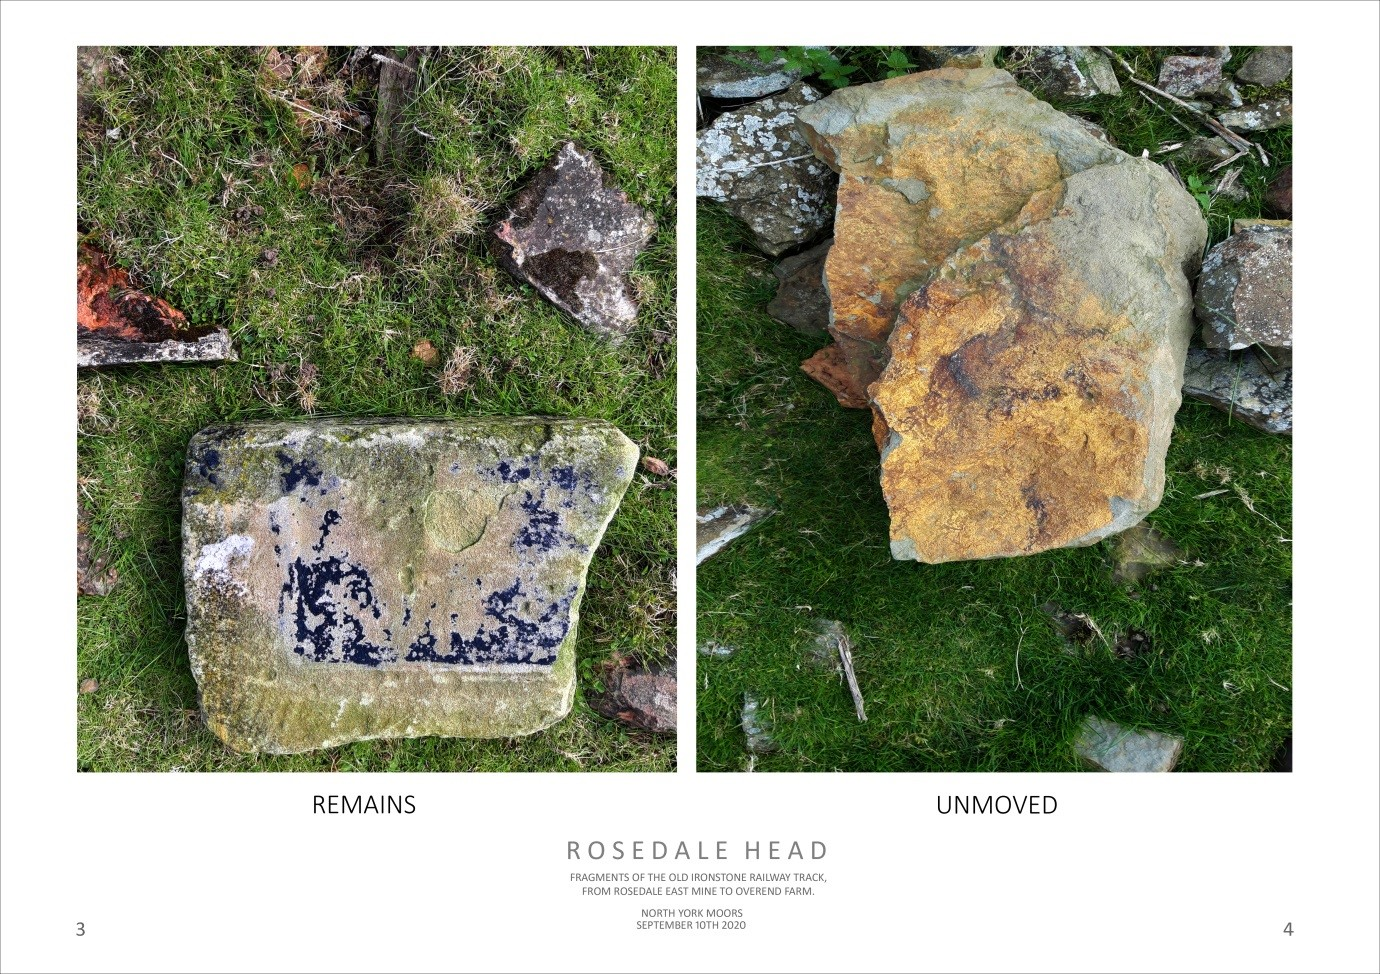 ROSEDALE HEAD - REMAINS, UNMOVED